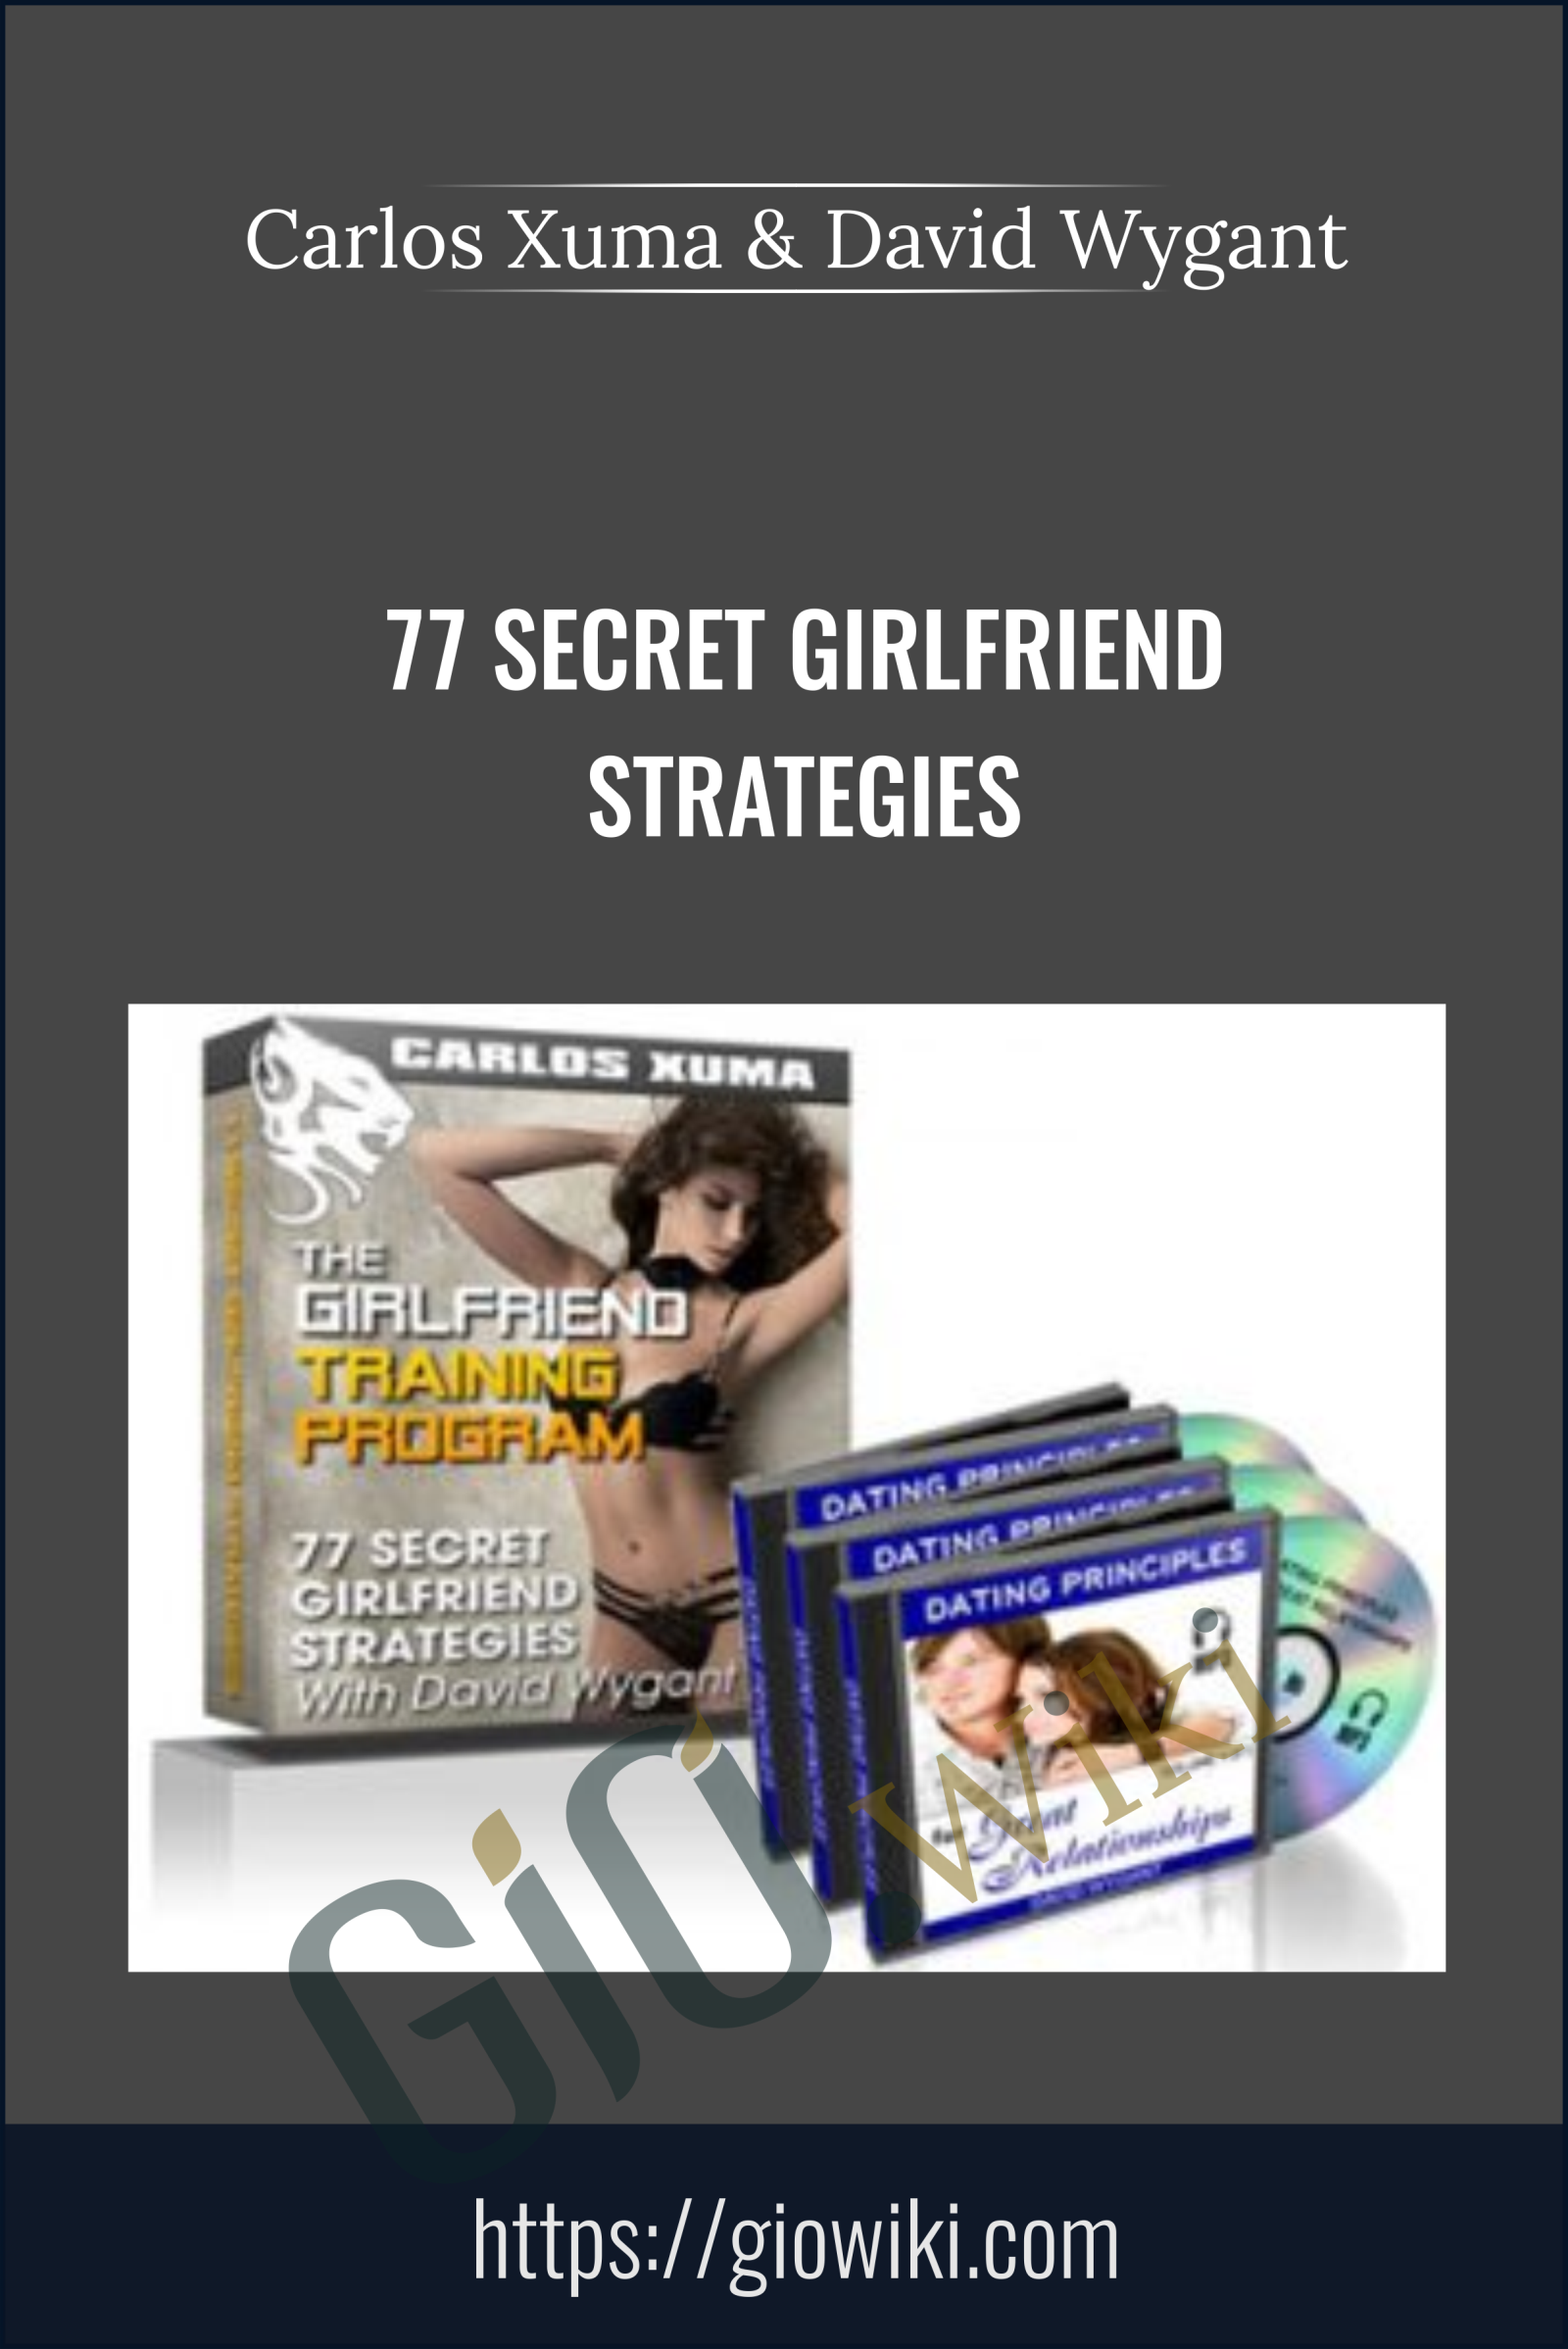 77 Secret Girlfriend Strategies - Carlos Xuma & David Wygant